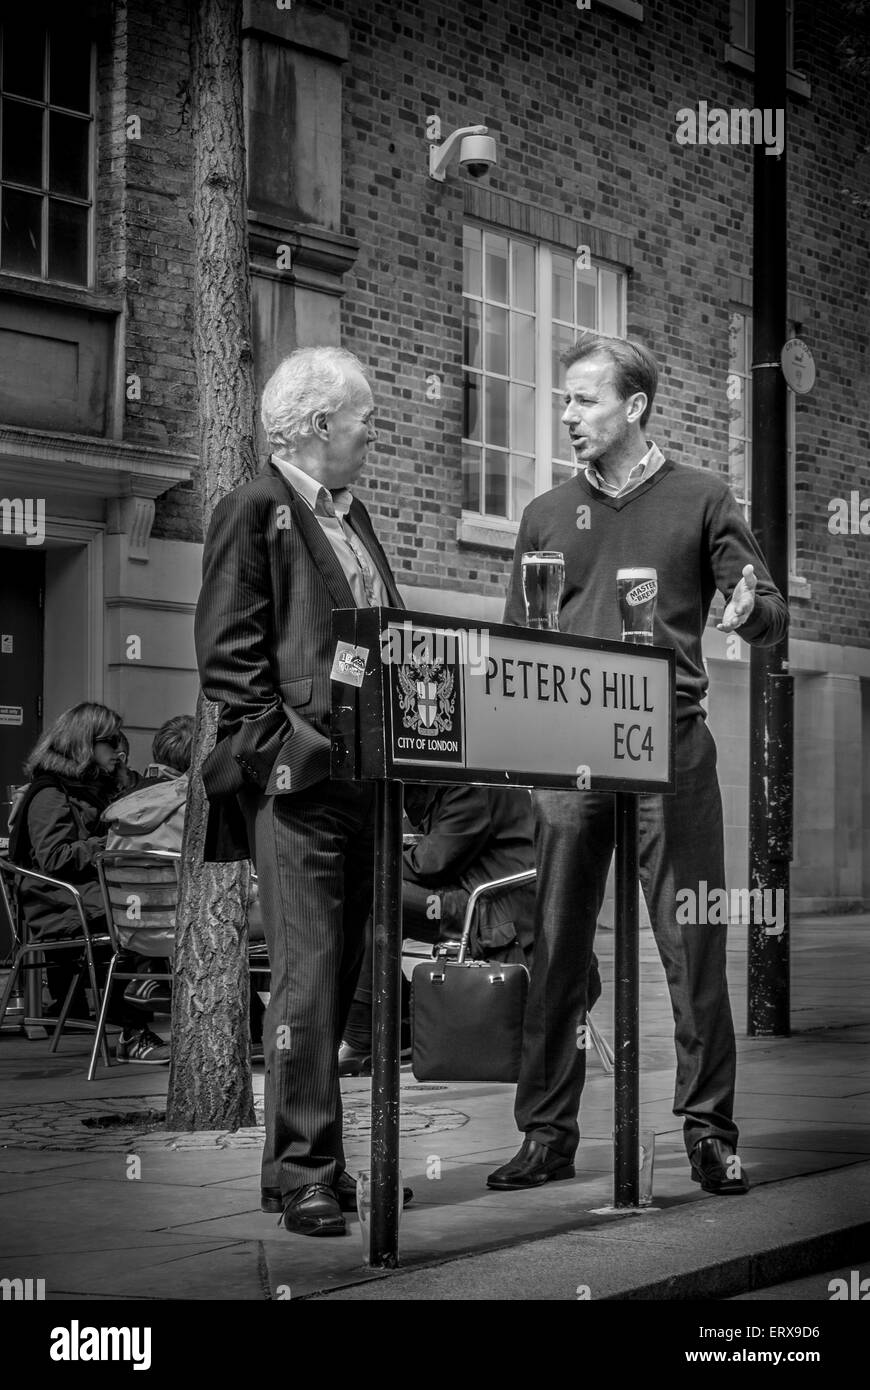 Two men having a lunchtime drink and chat outside, Peter's Hill, London, UK. - Stock Image